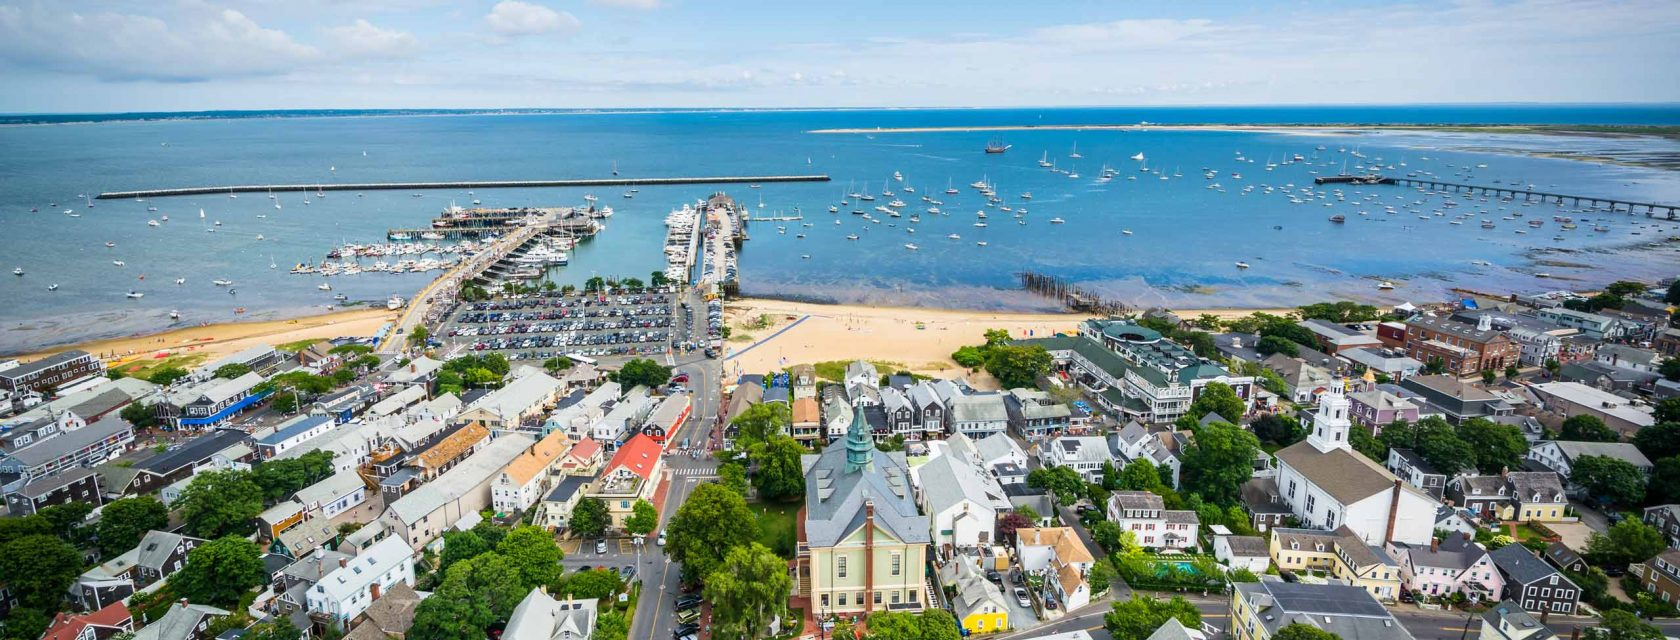 The view of Cape Cod bay from the Provincetown Monument on a beautiful summer day